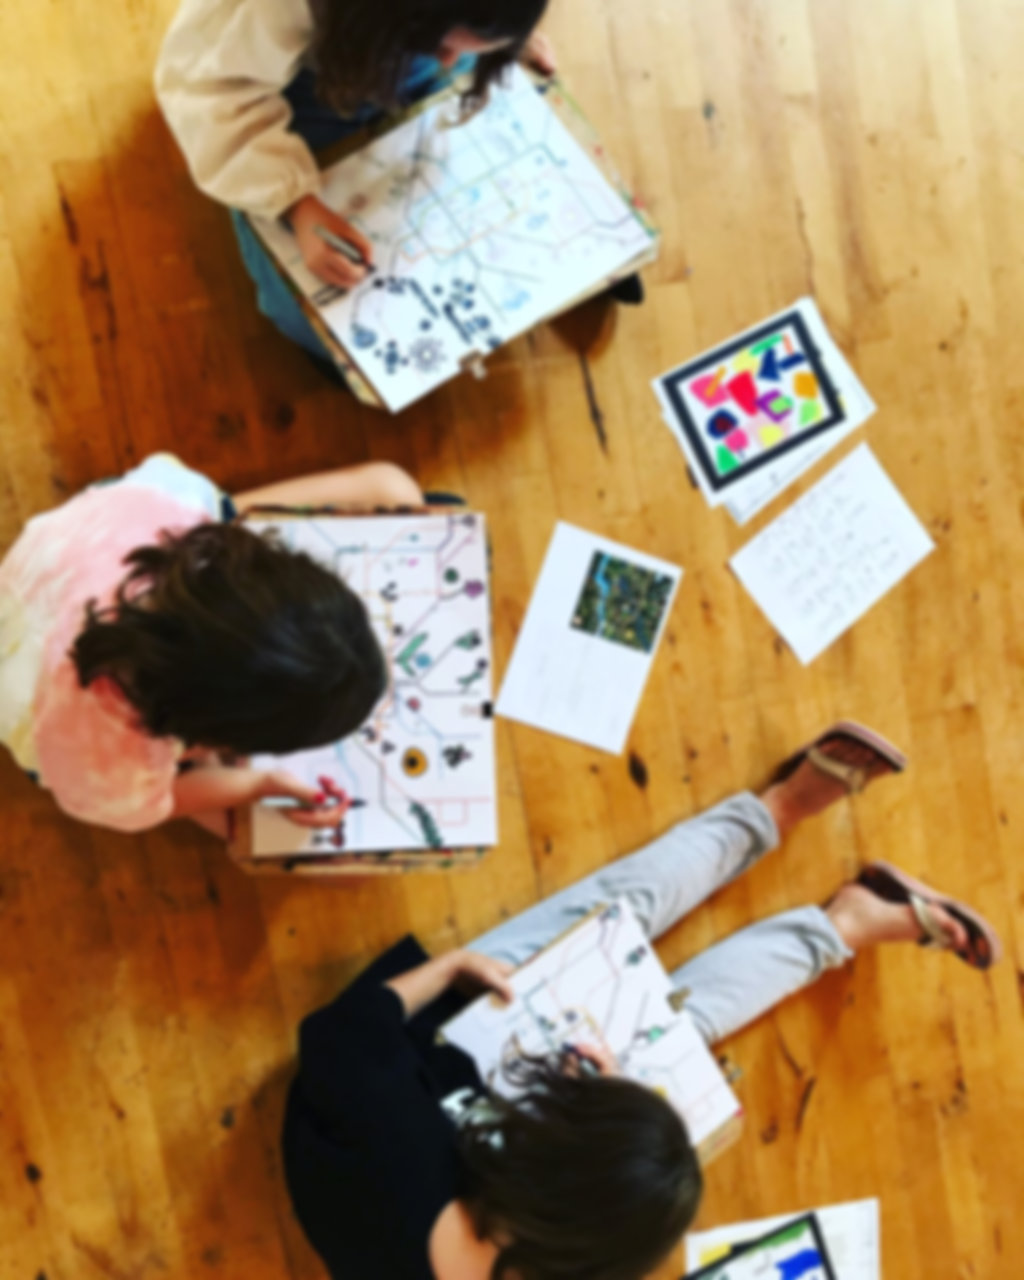 Overhead view of children sitting on the floor drawing with markers